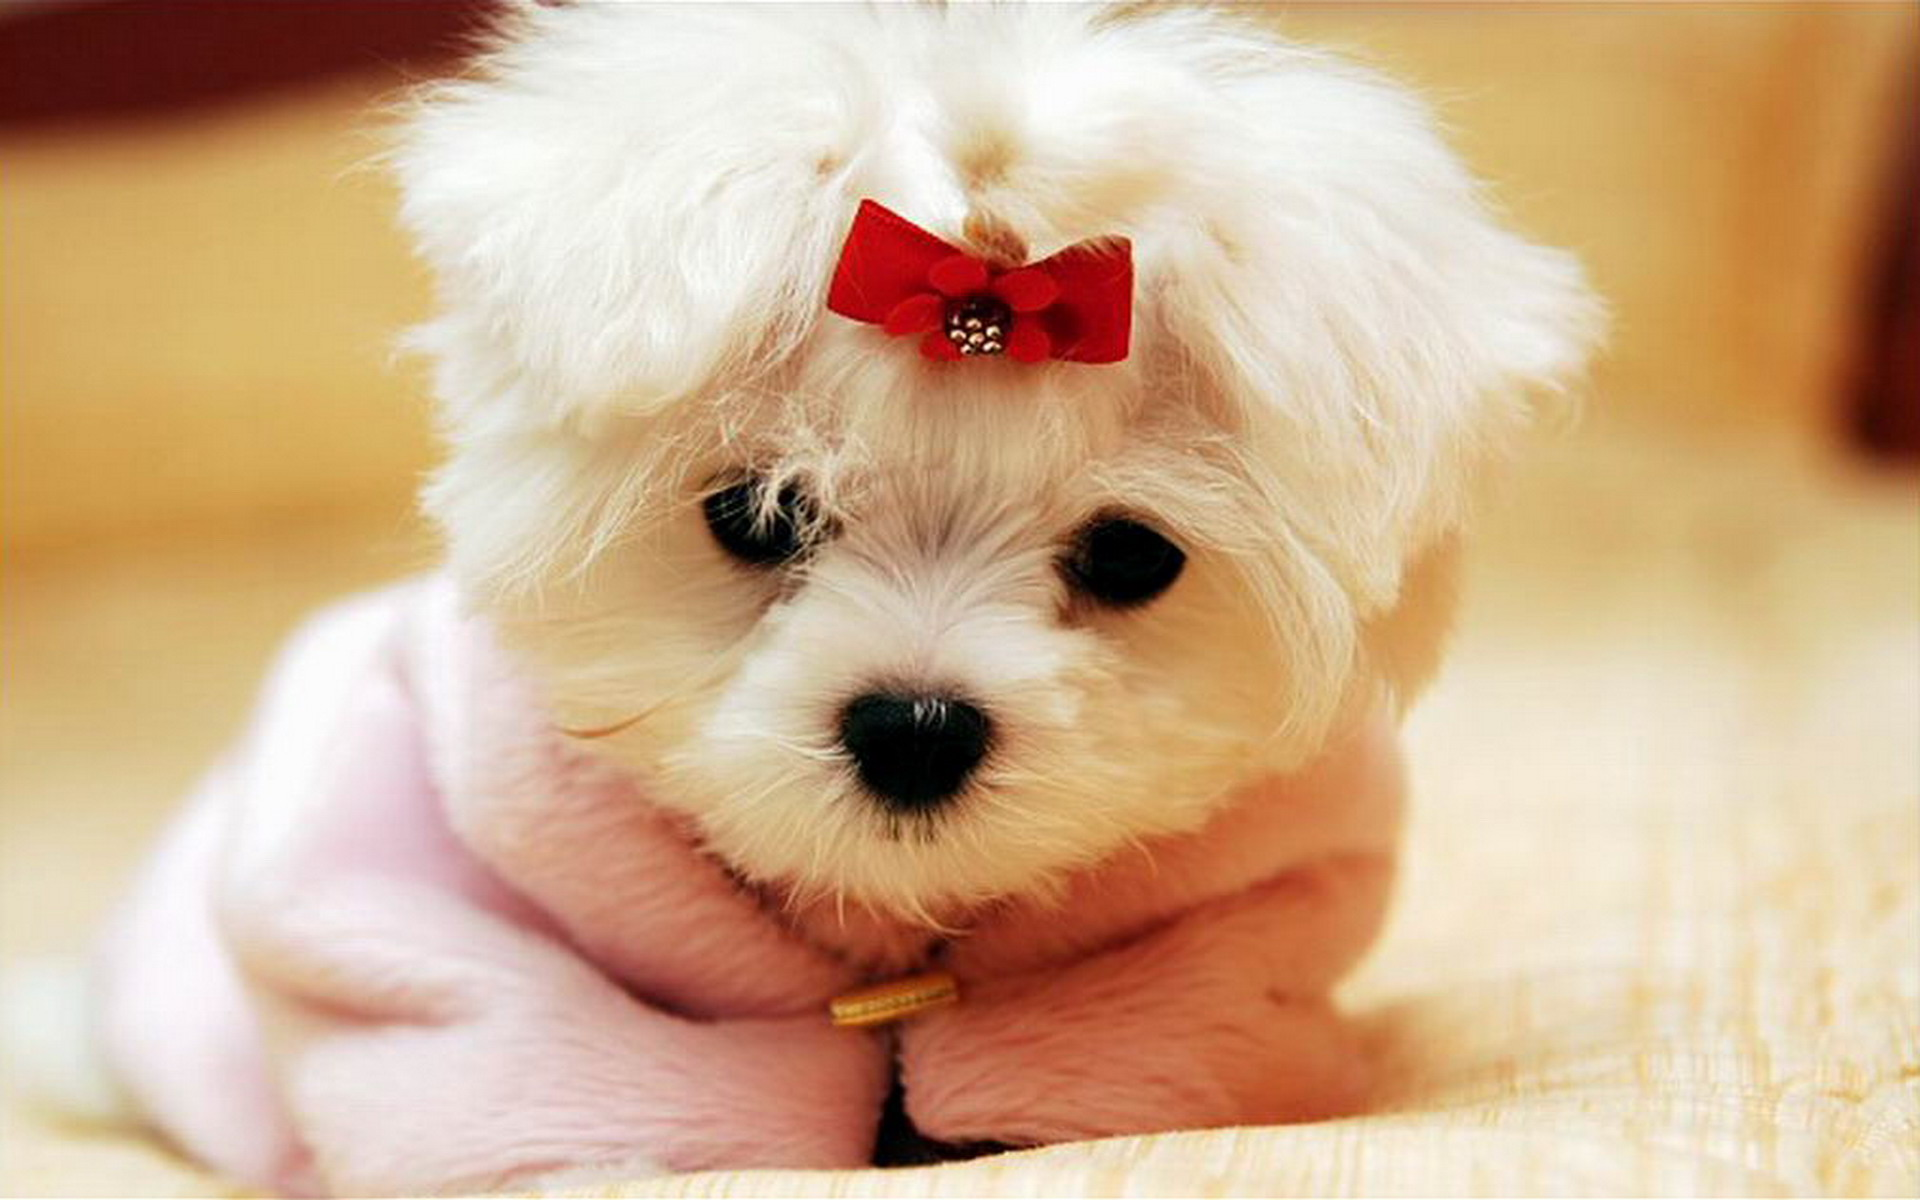 Cute Dog Iphone Wallpapers Cute dog wallpapers